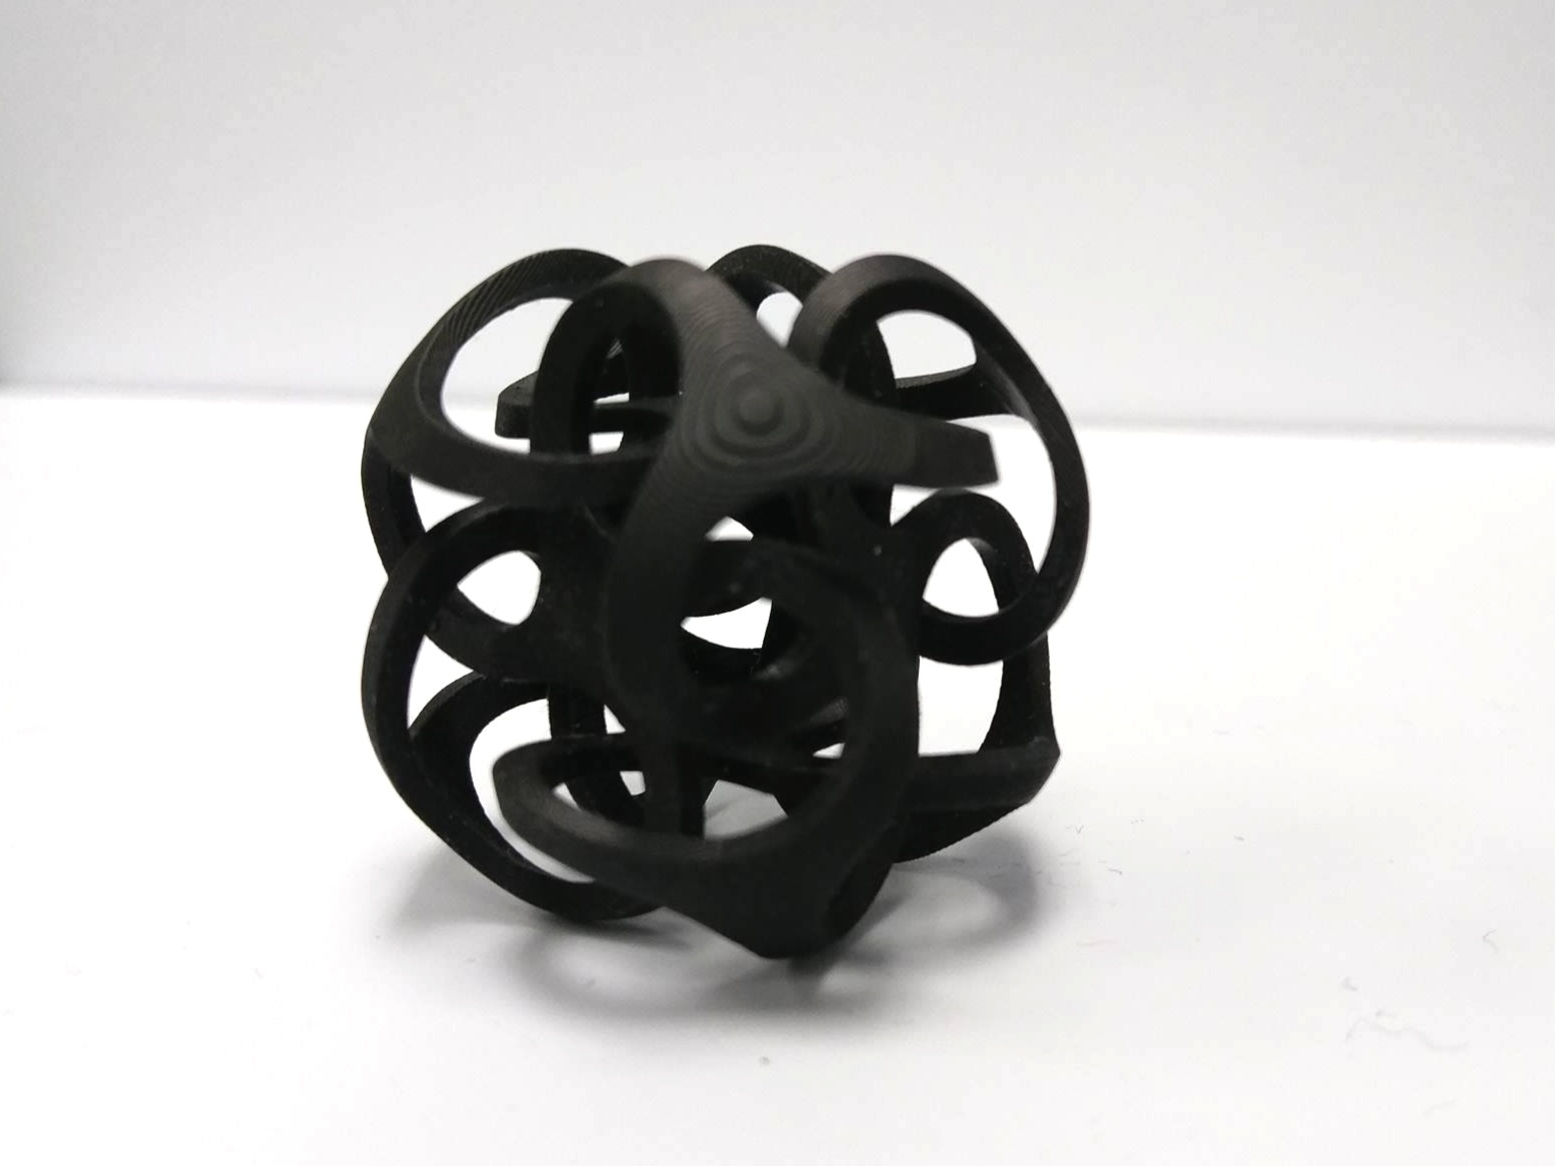 SLS 3D printed object made with flame-retardant nylon.